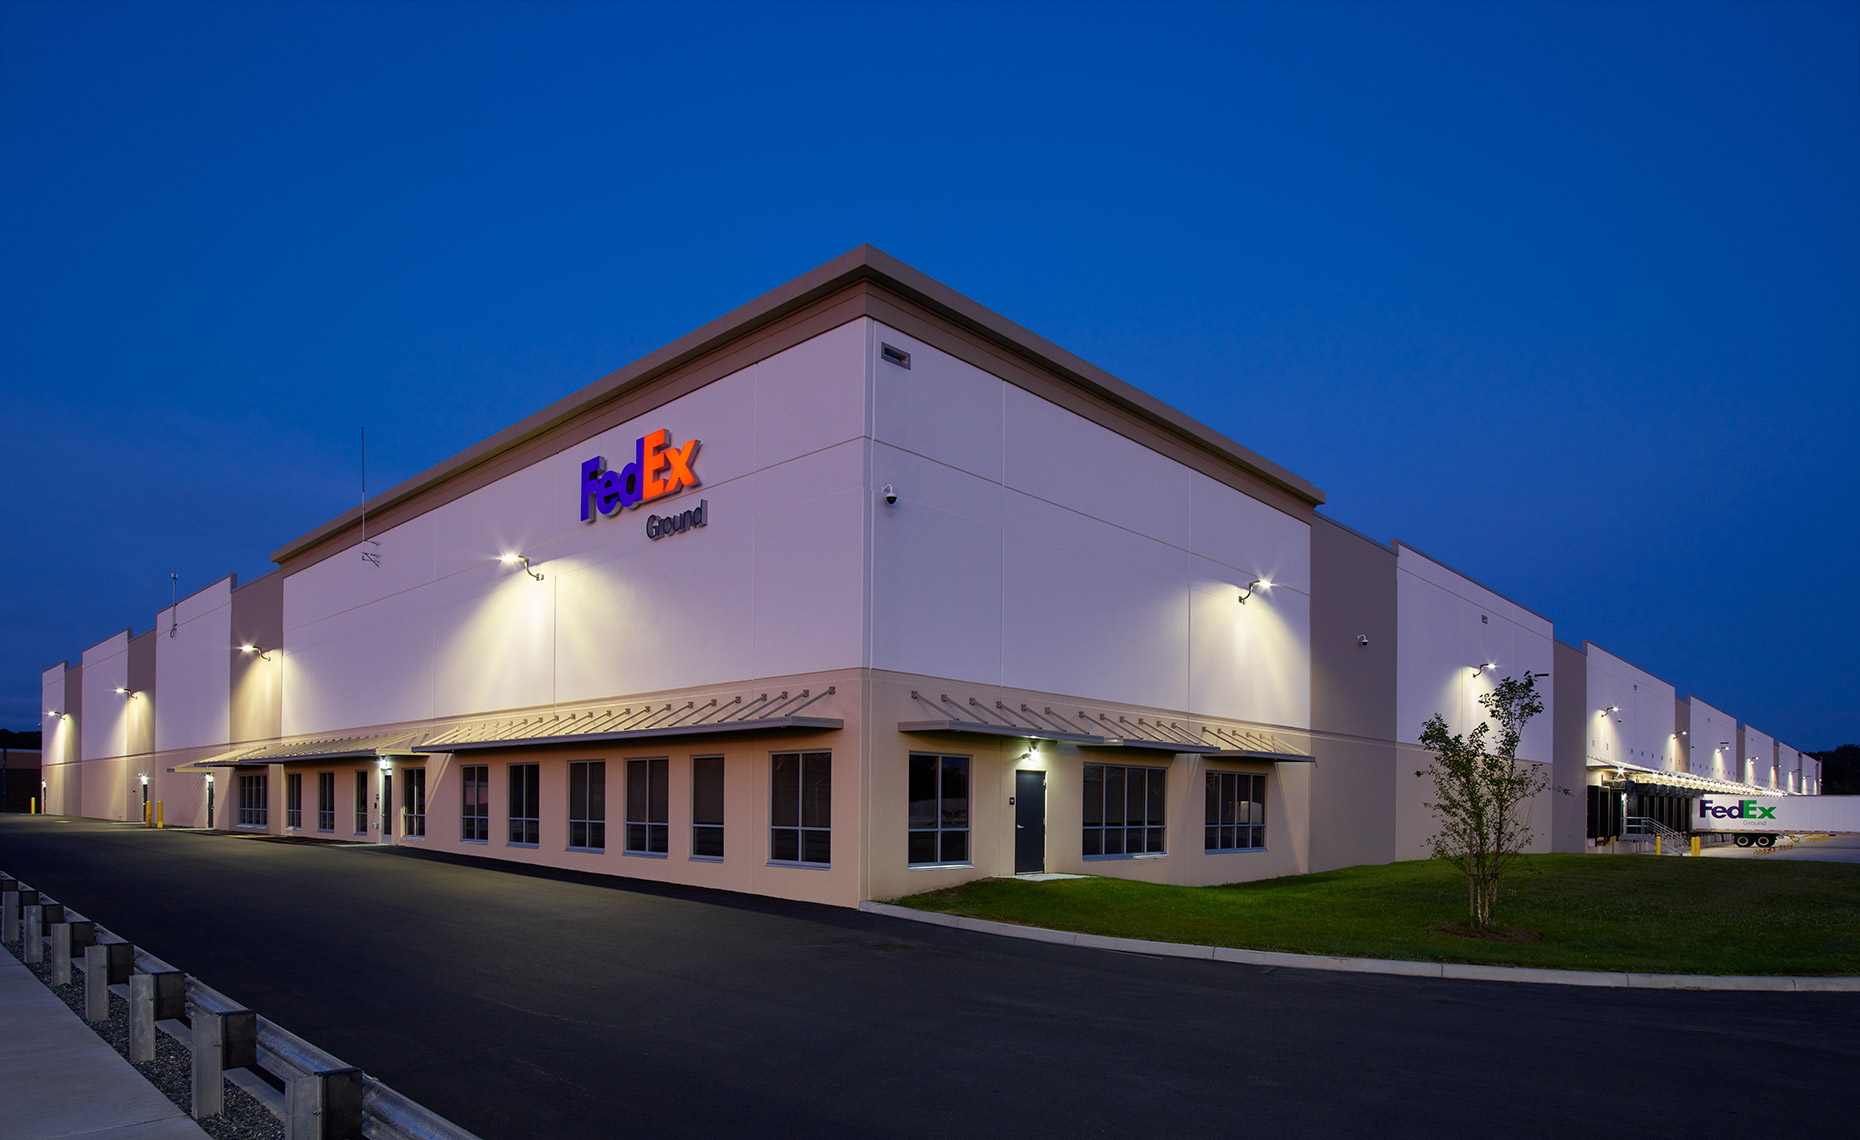 Exterior Architectural Photograph  of Fed_Ex-Seekonk-CF003112-1-IP